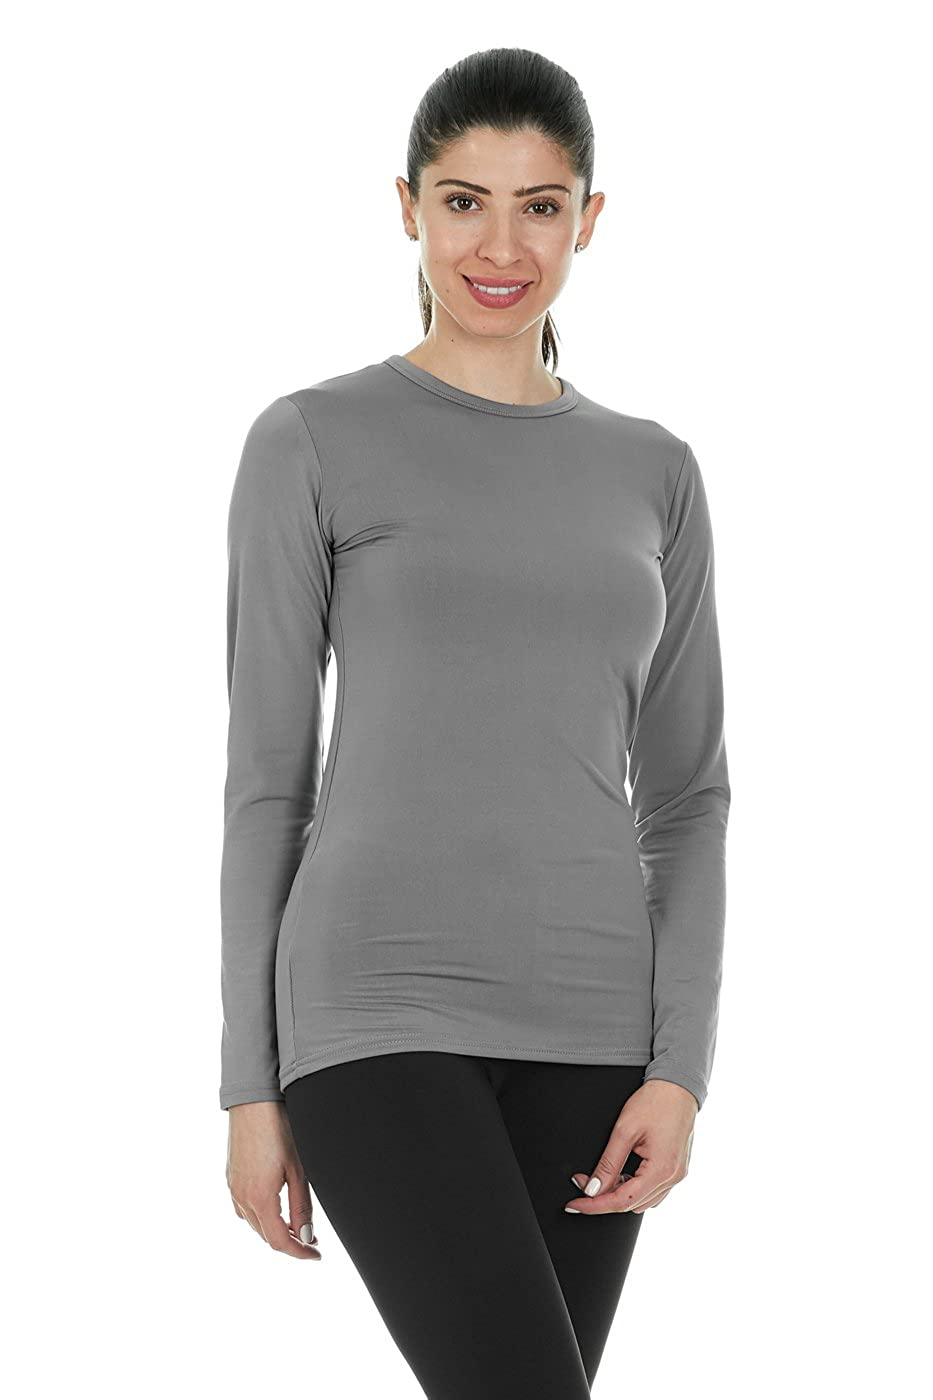 e0505ffbabccbc Thermajane Womens Ultra Soft Thermal Underwear Shirt - Compression  Baselayer Crew Neck Top at Amazon Women s Clothing store